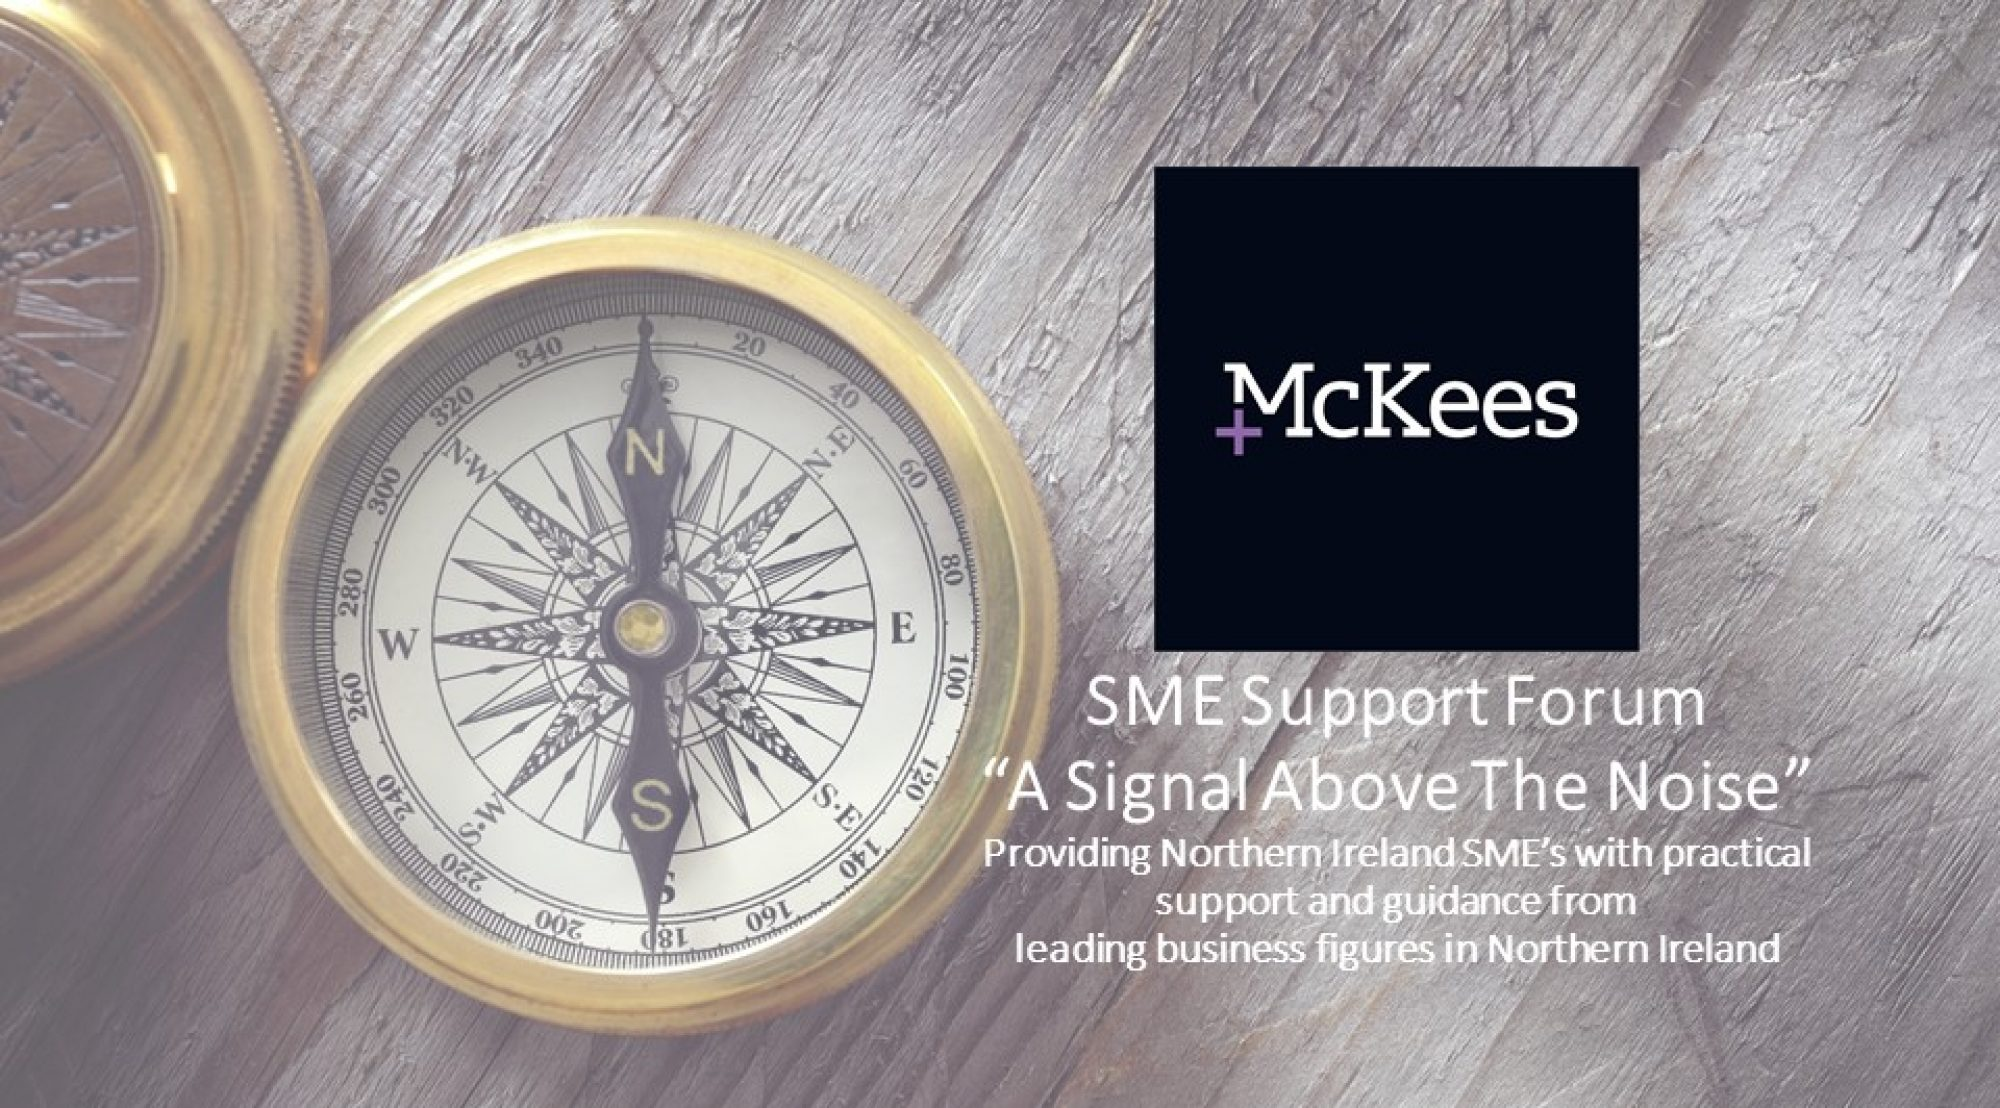 SME Support Forum Northern Ireland